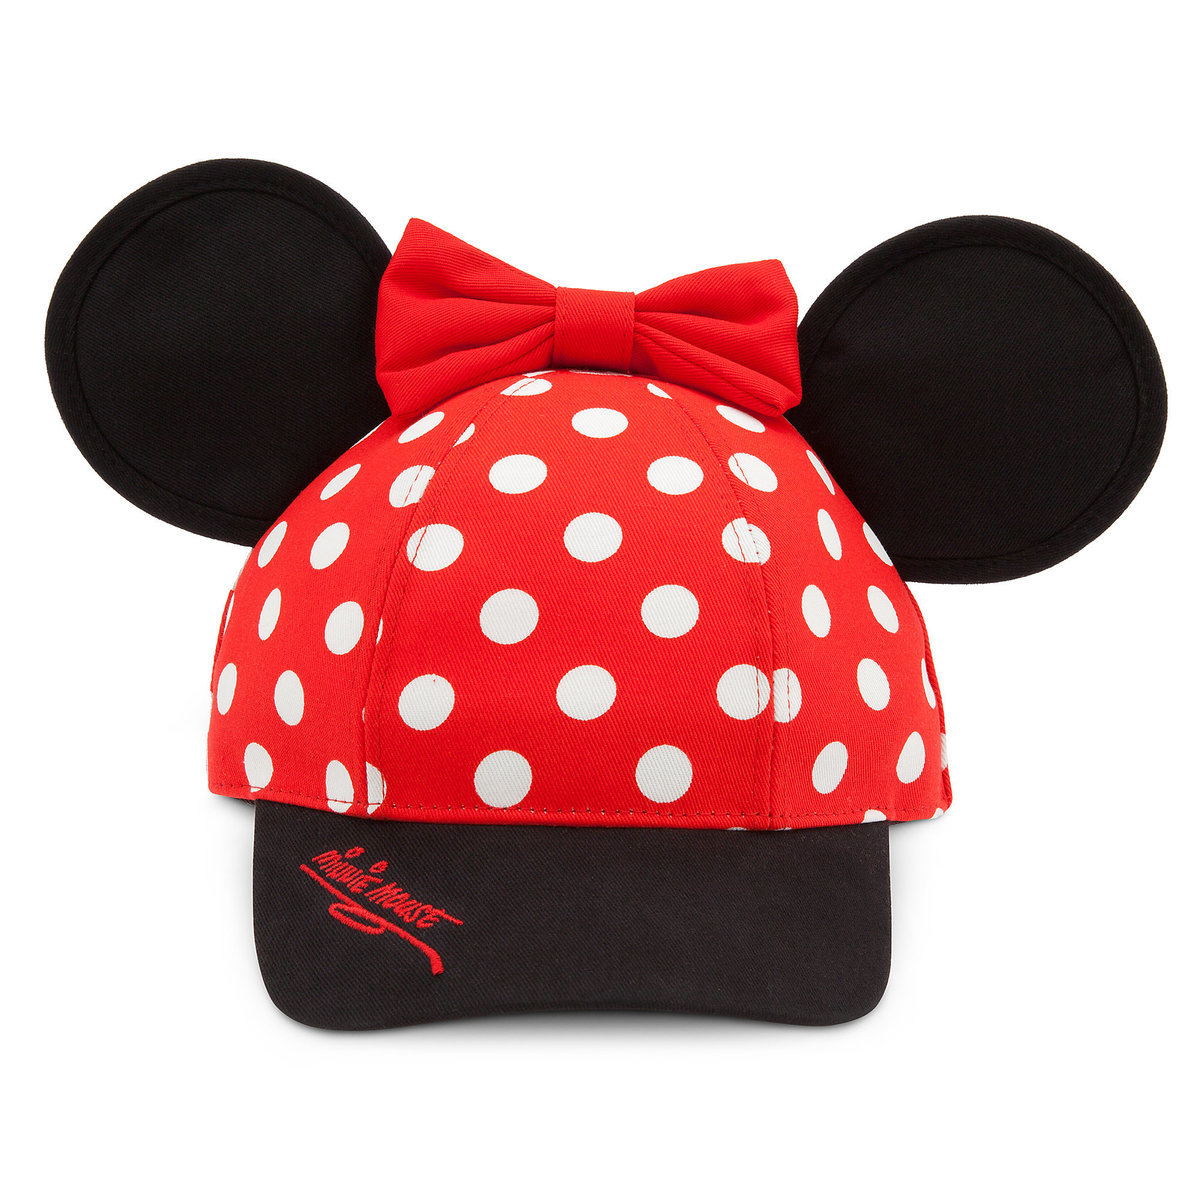 Thumbnail Image of Minnie Mouse Baseball Cap for Kids - Walt Disney World #  1